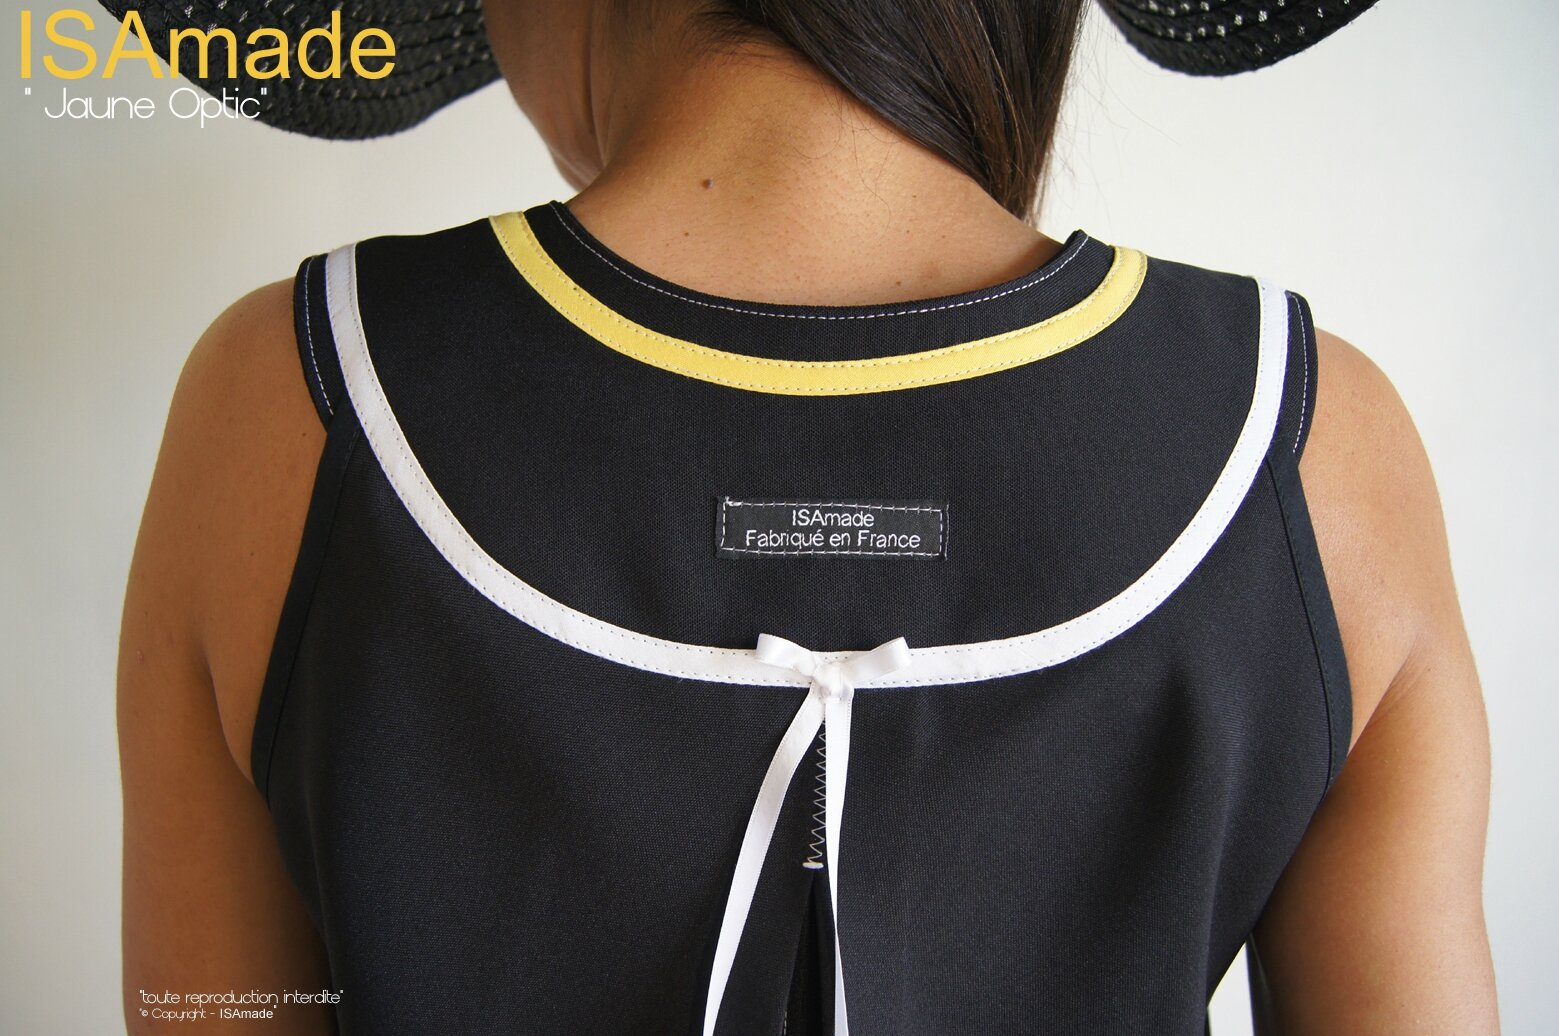 MOD 392C Robe Trapèze créateur originale bicolore noir Blanc jaune made in France Graphique motif imprimé Triangle Printemps 2016